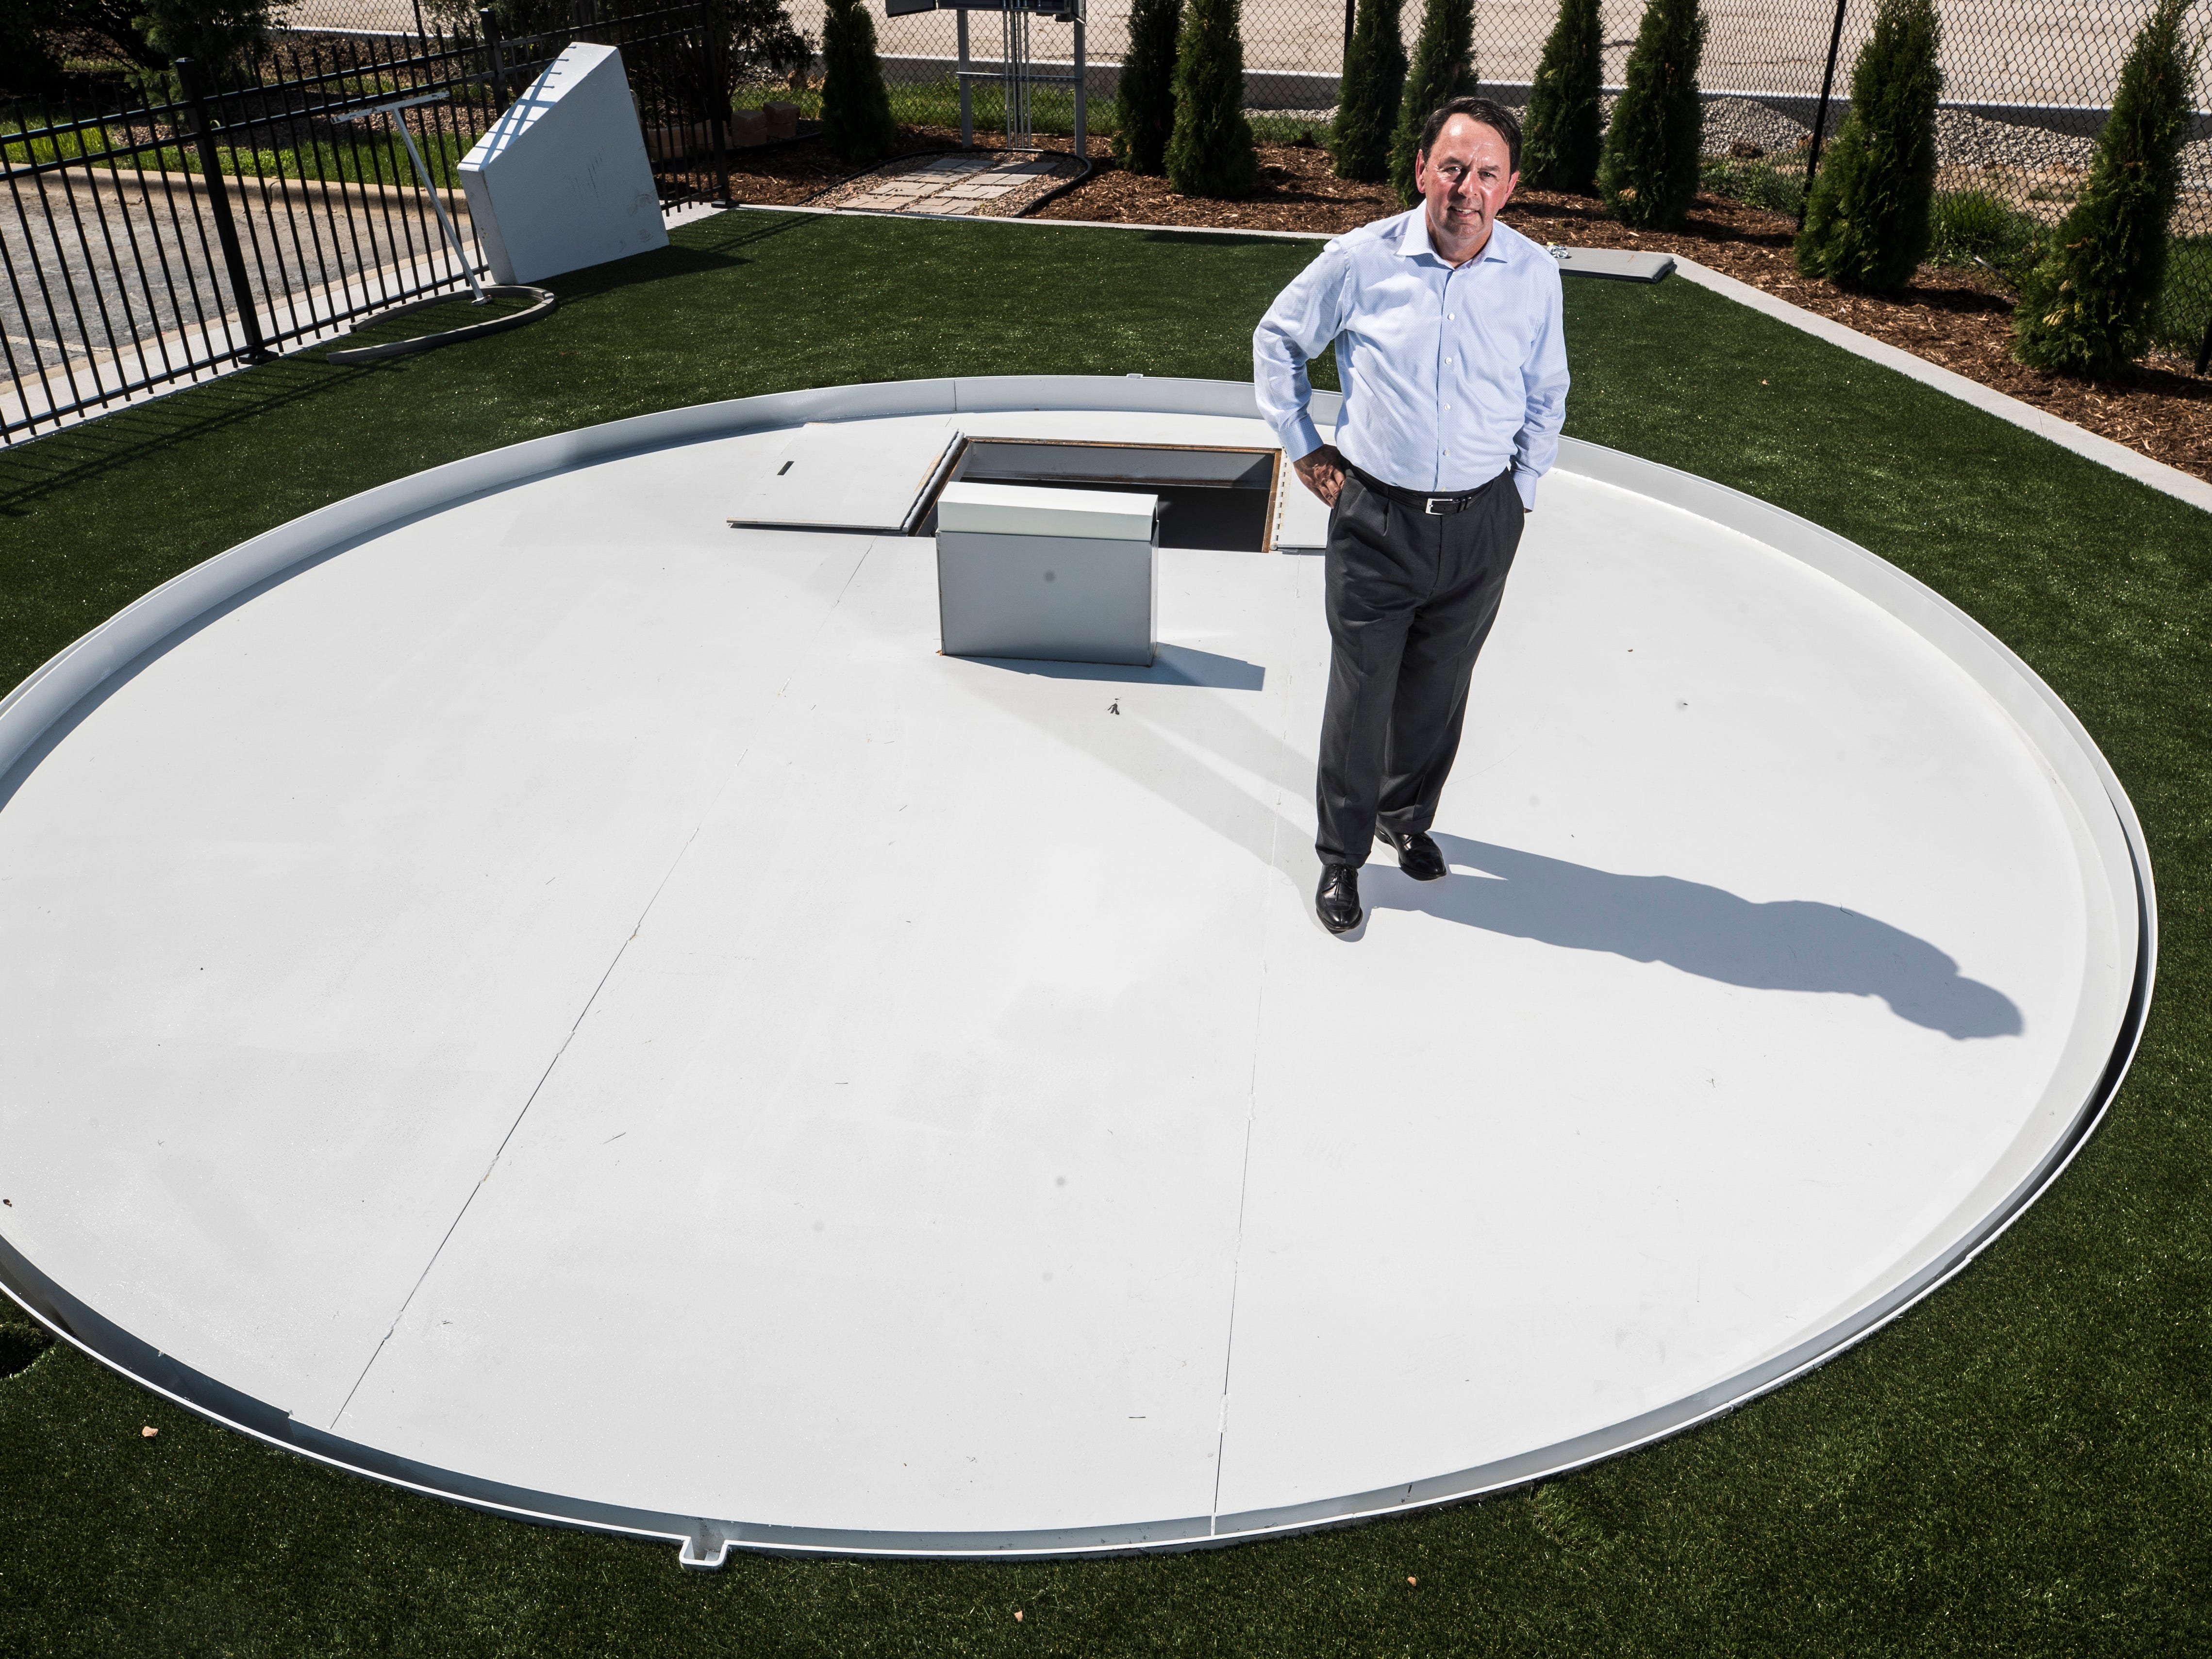 Wayne Estopinal, head of The Estopinal Group in Jeffersonville, had his architecture firm design a retractable pitcher's mound to aid in transition of the surface between baseball diamond and soccer pitch. The Tulsa Drillers have purchased one.